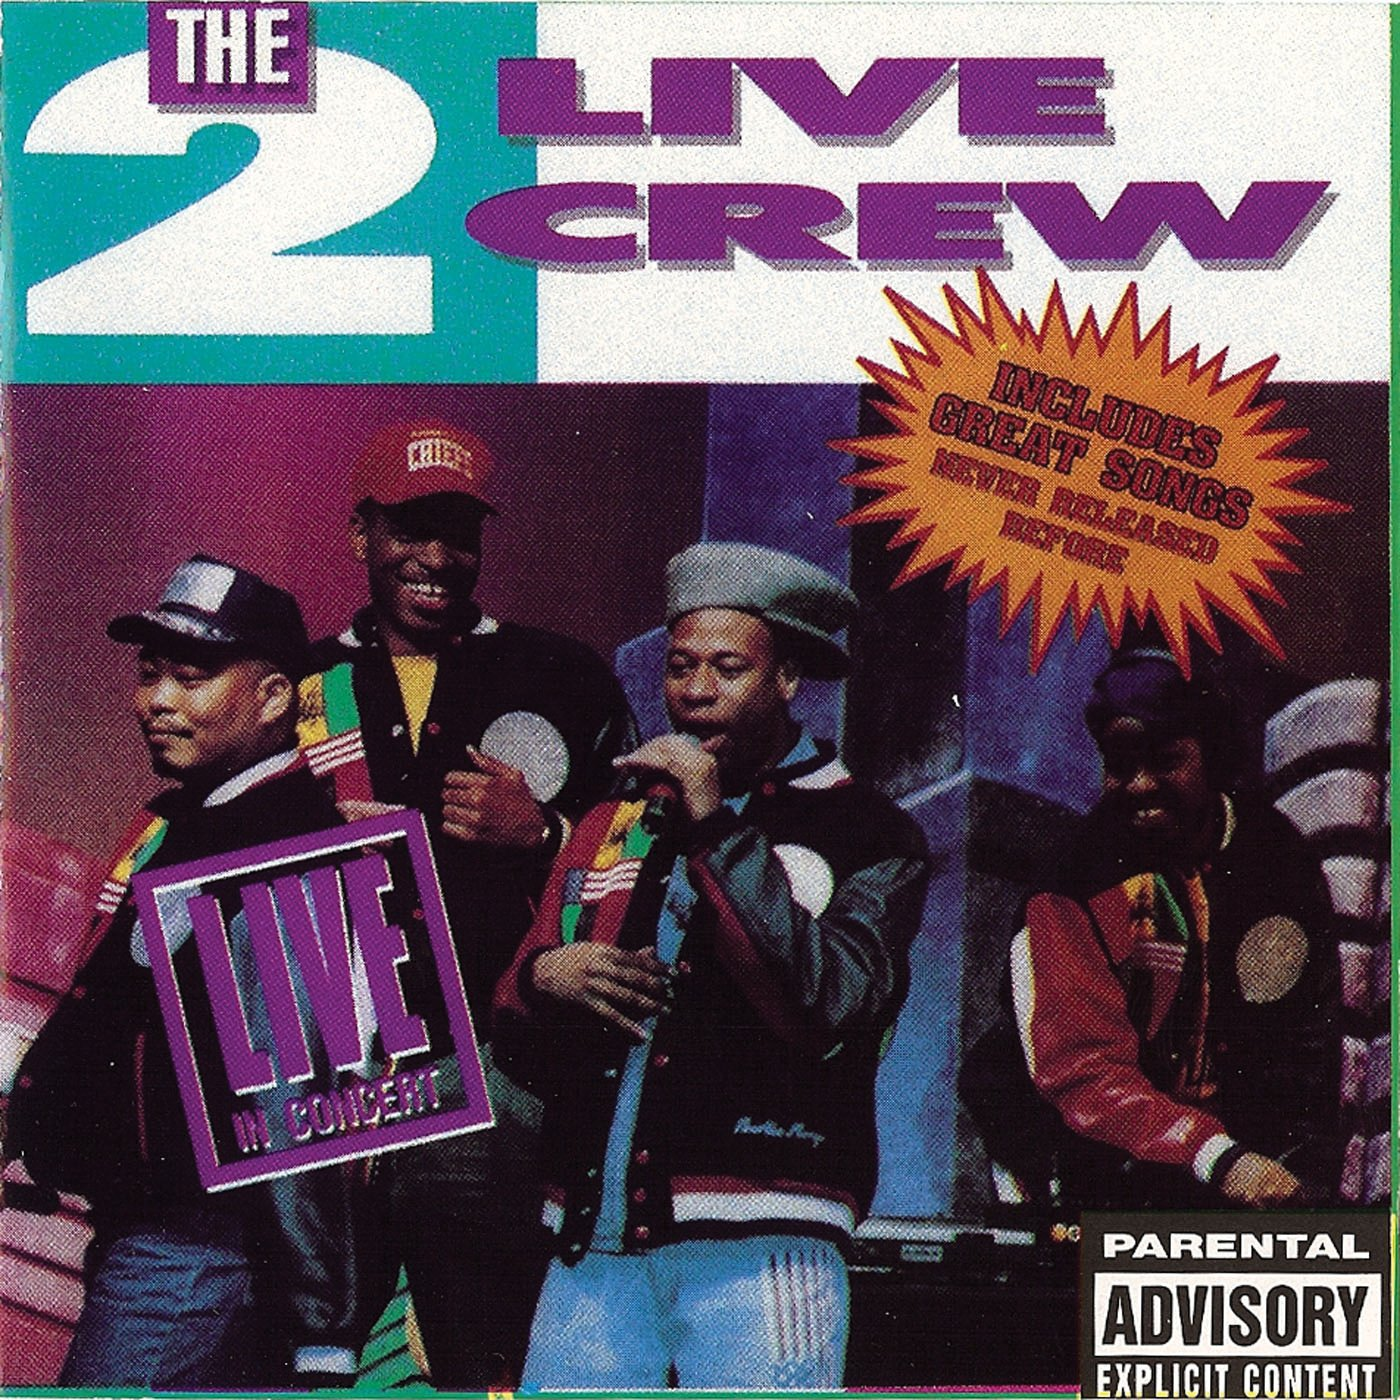 The 2 Live Crew - Live in Concert by Lil Joe Records